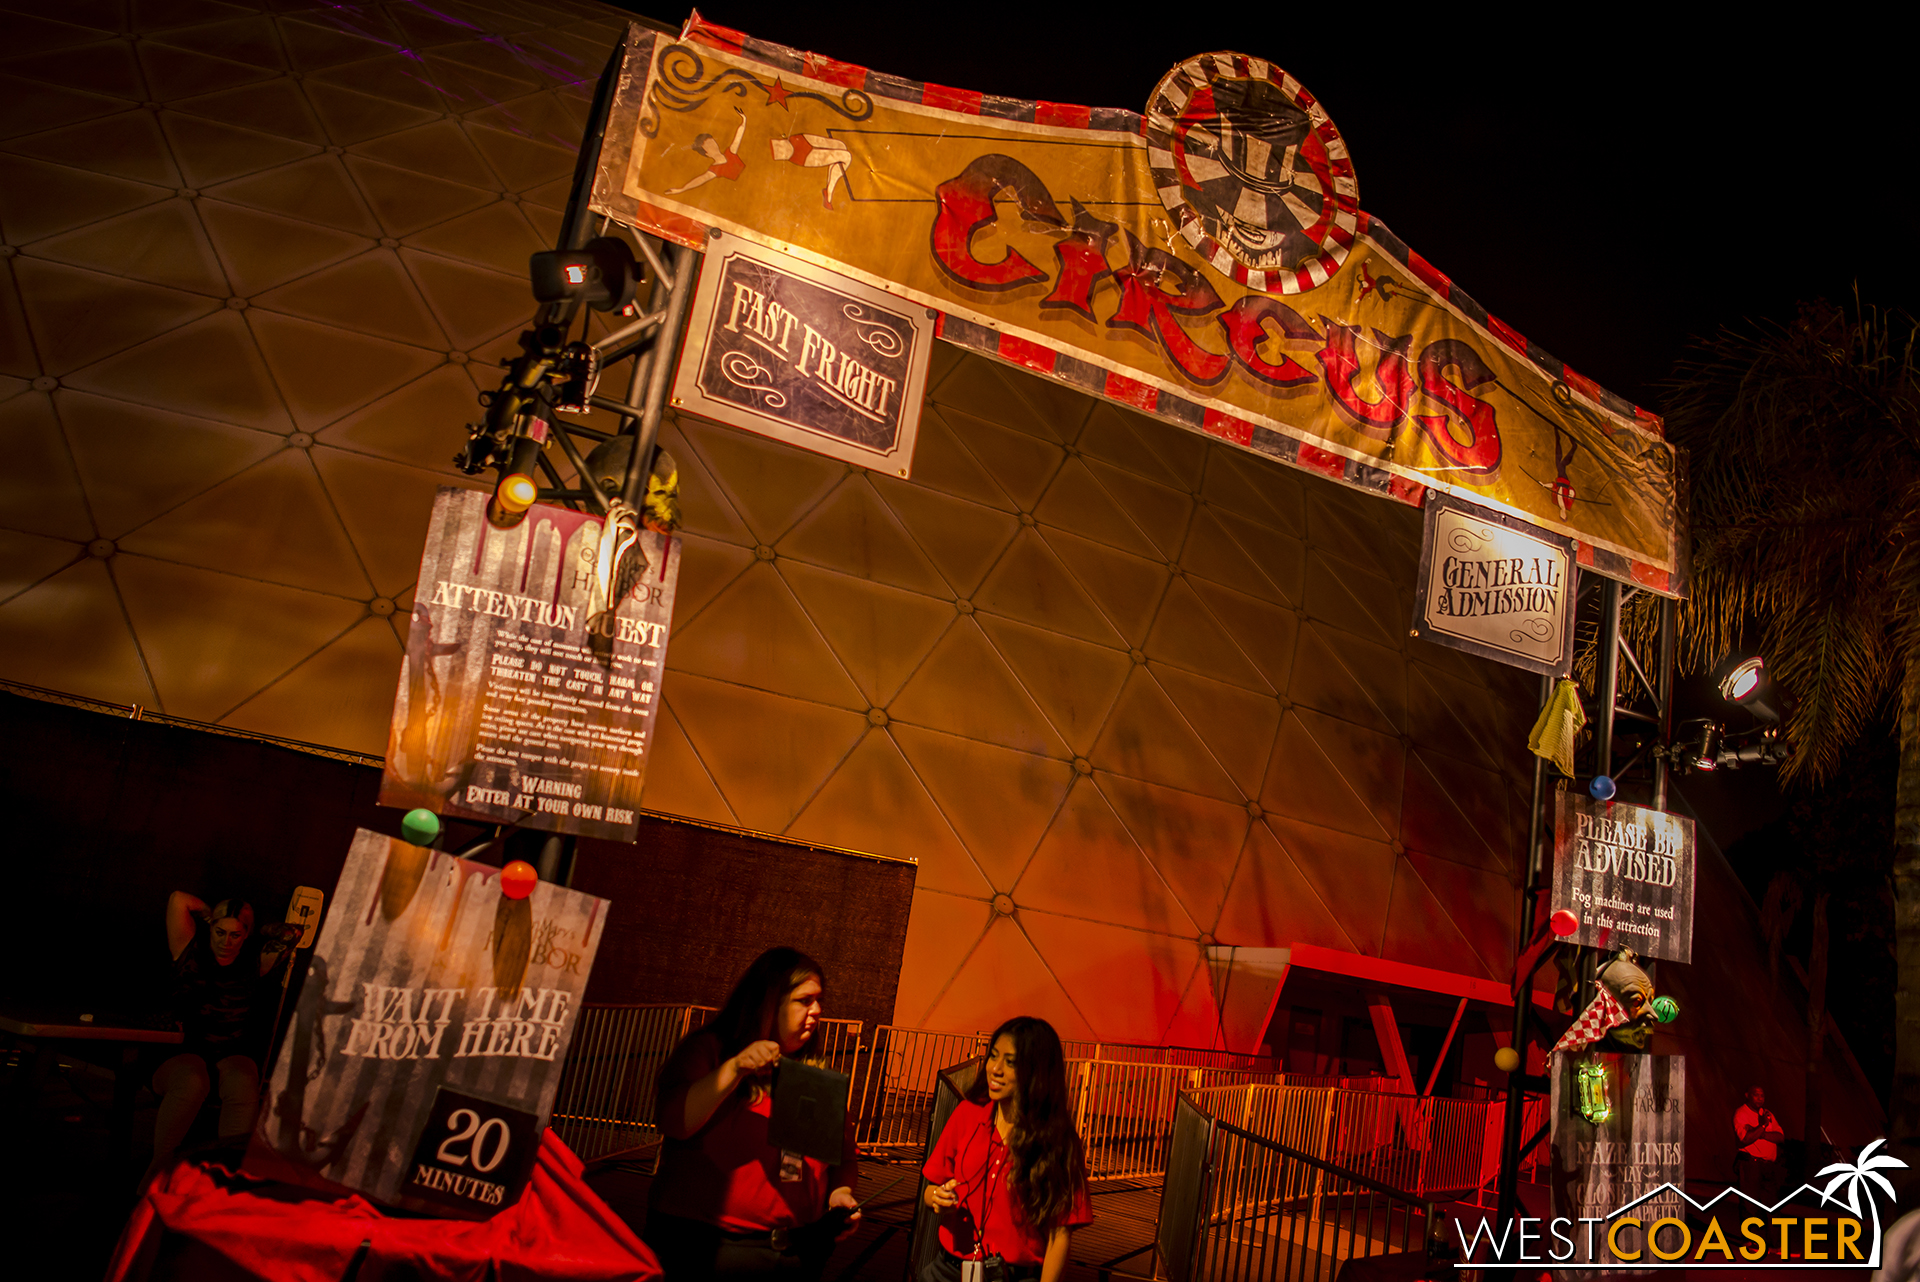 Circus time! Lets go inside!